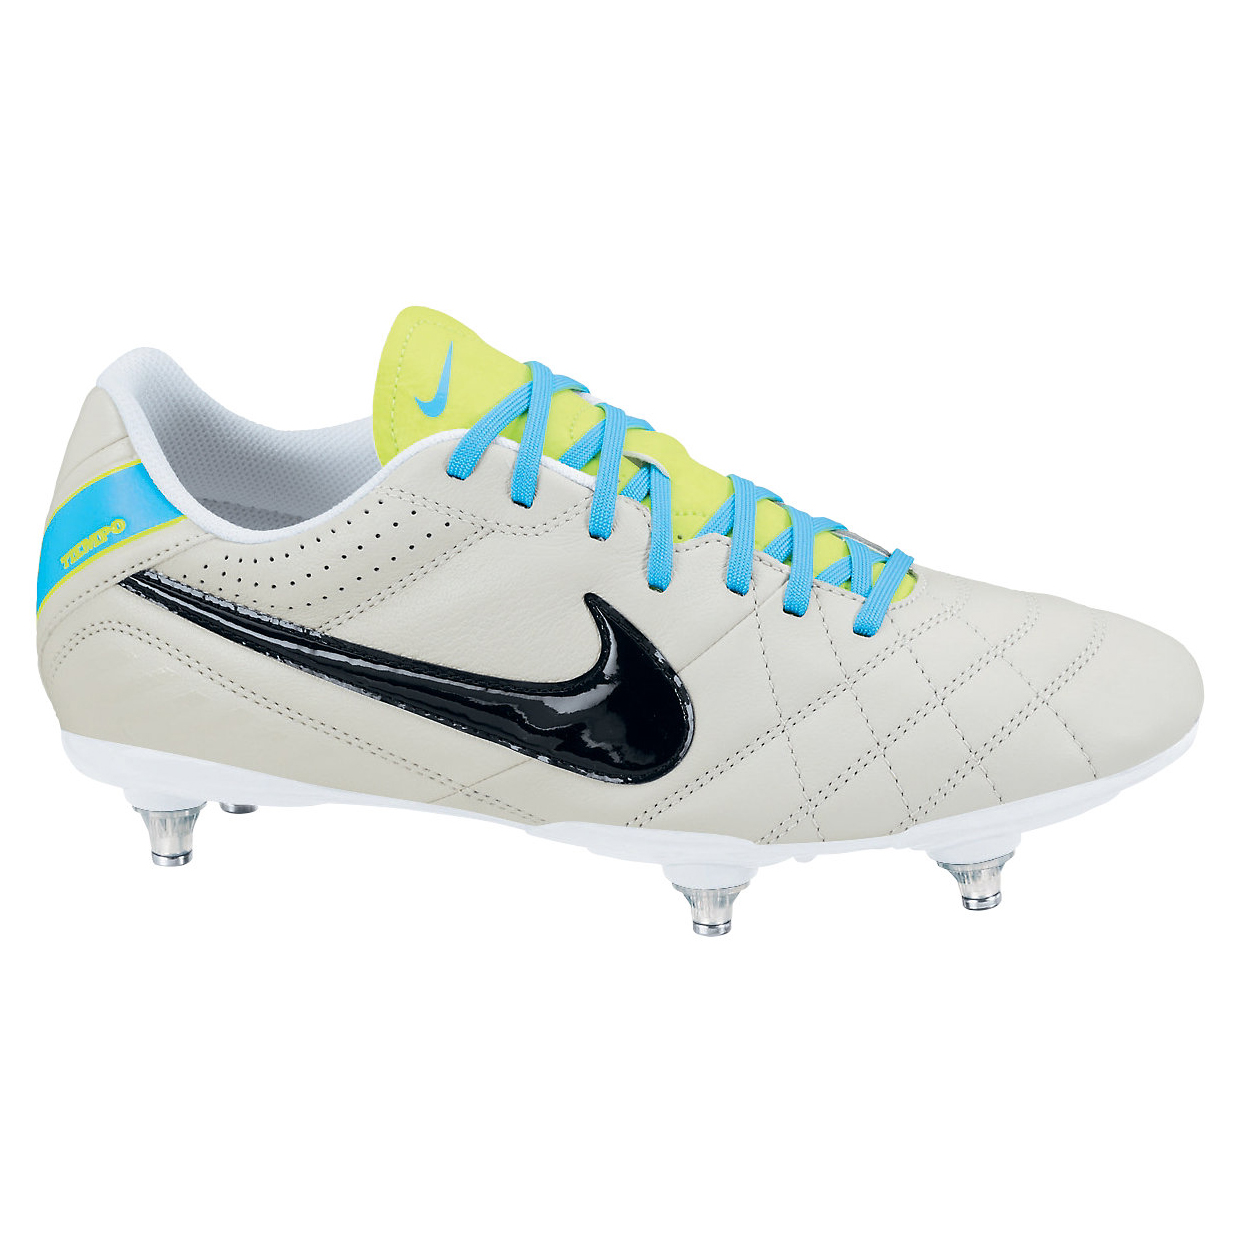 Nike Tiempo Natural IV Soft Ground Football Boots Lt Grey